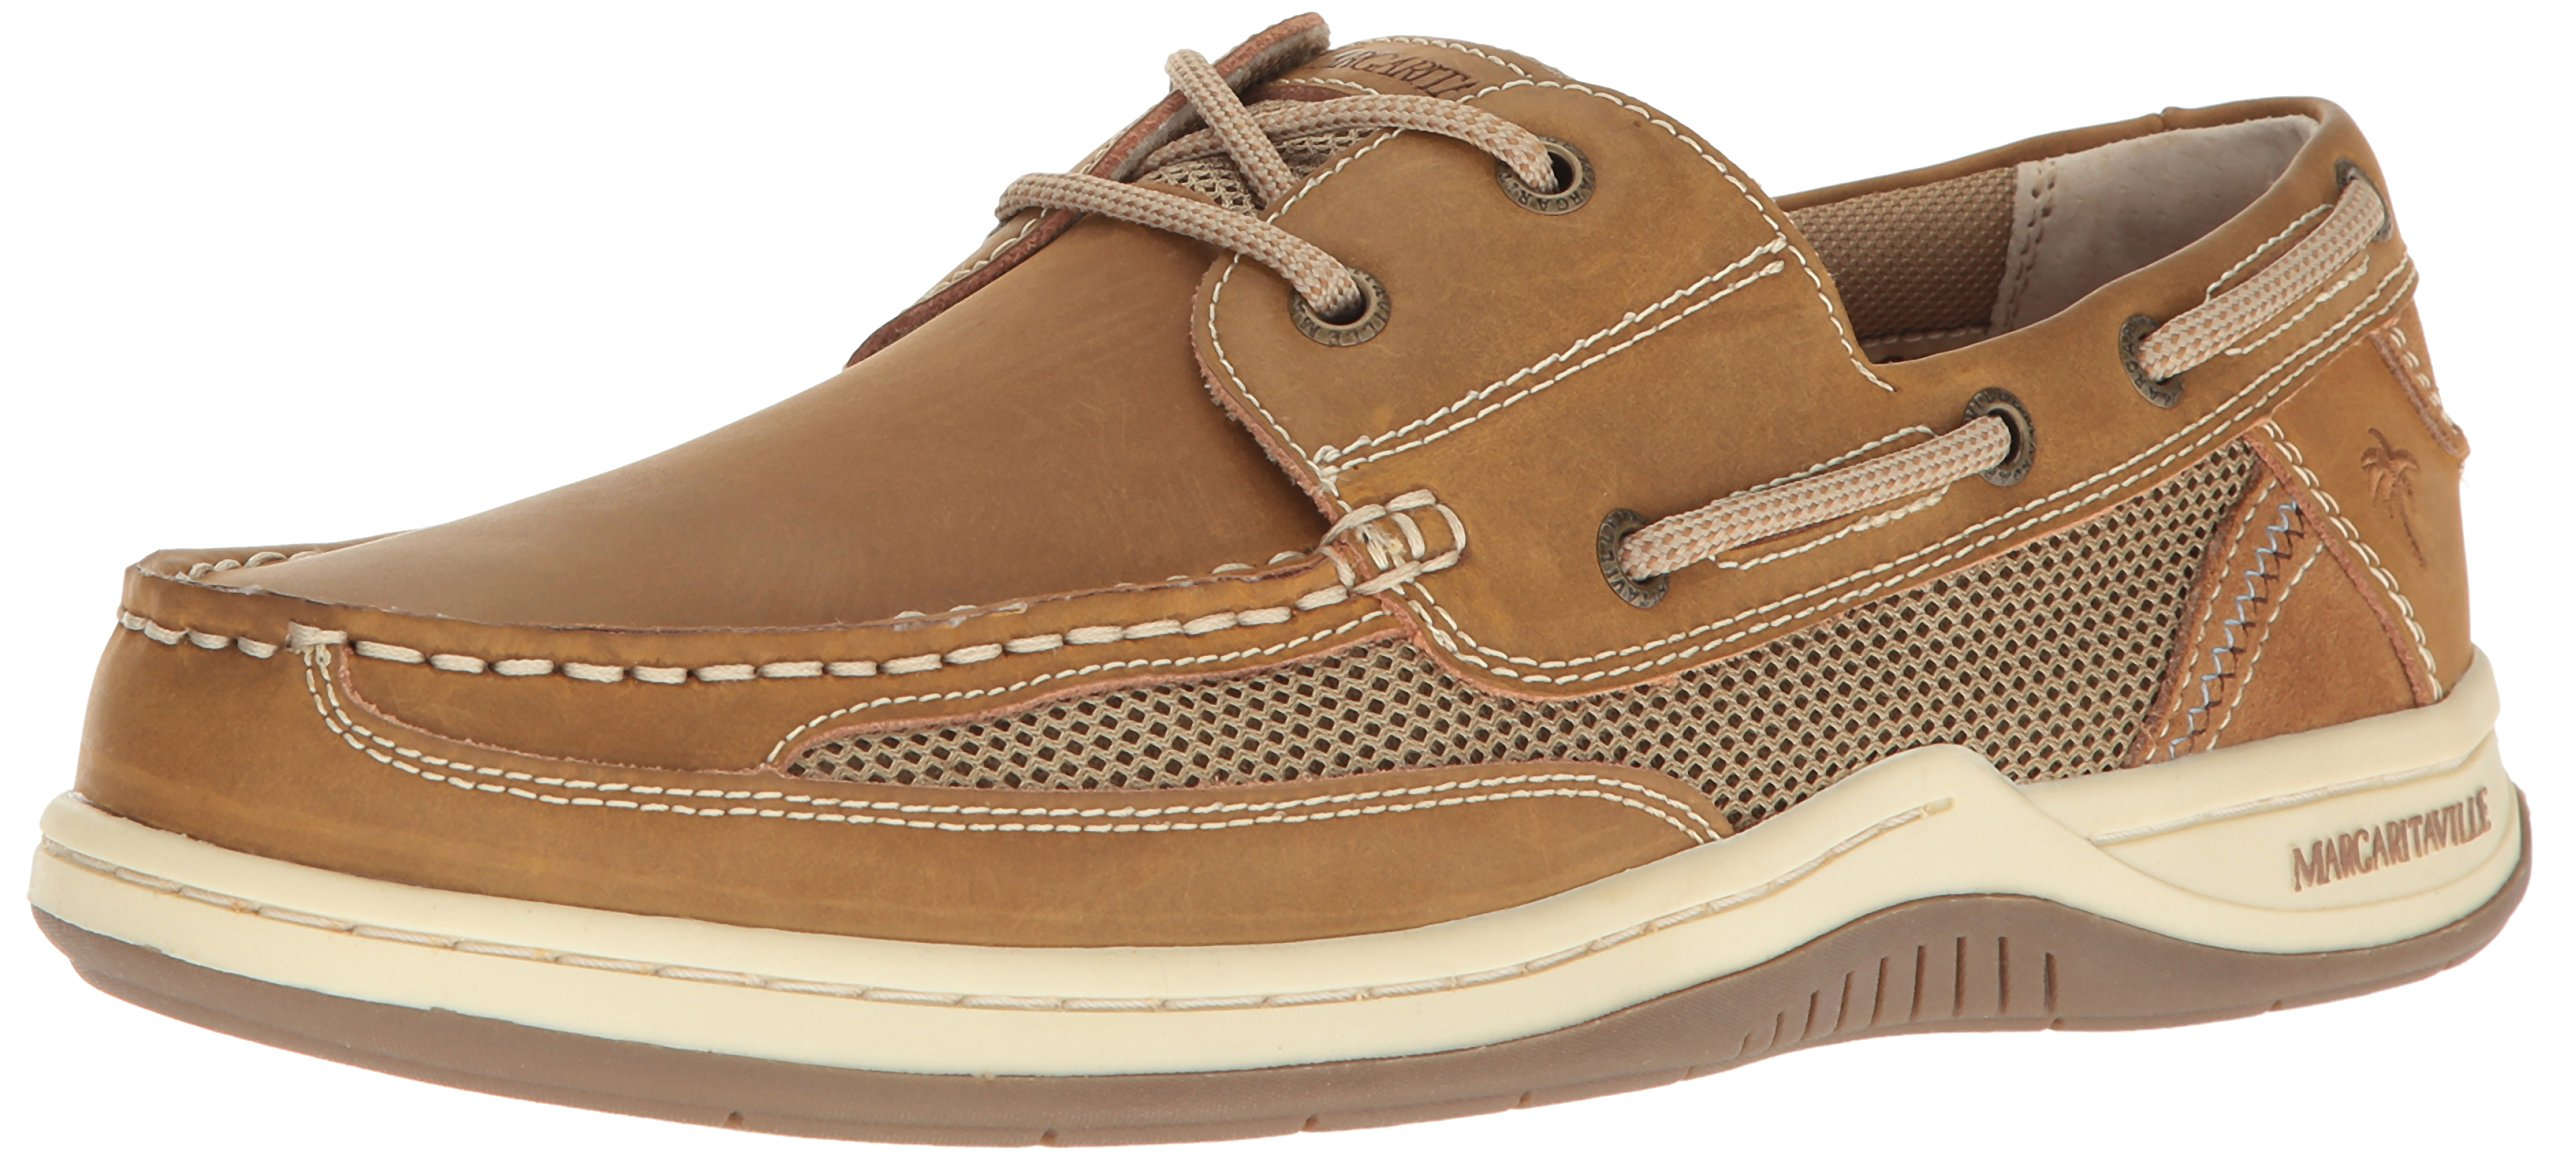 Margaritaville Men's Anchor Lace Boat Shoe, Light Tan, 11 by Margaritaville